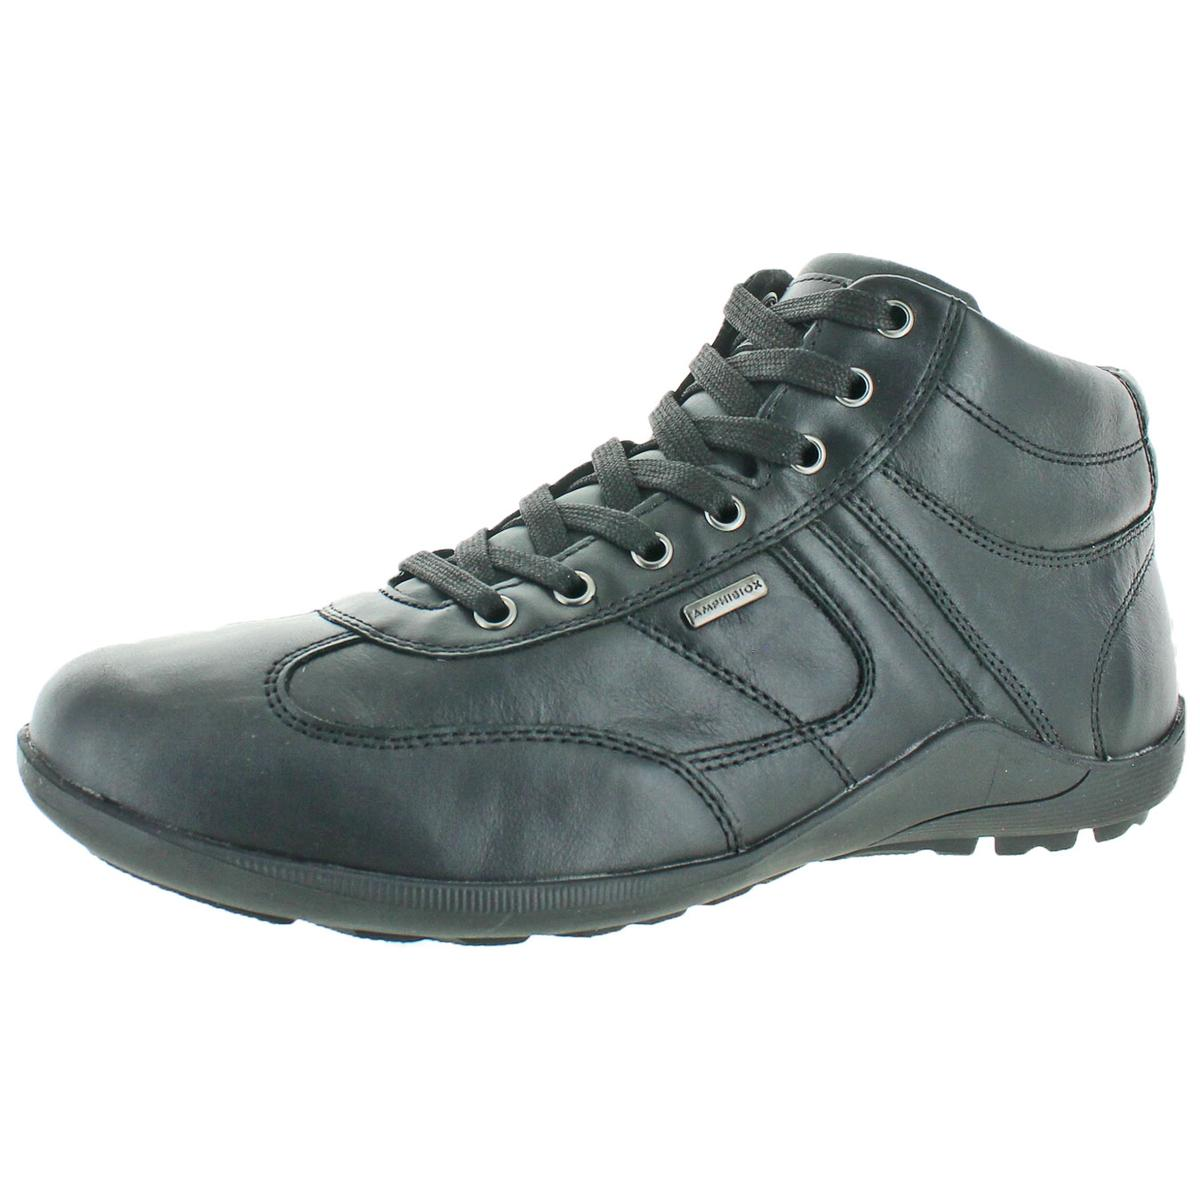 0c4dbece67 Details about Geox Compass ABX Amphibiox Men's Waterproof Leather Ankle  Boots